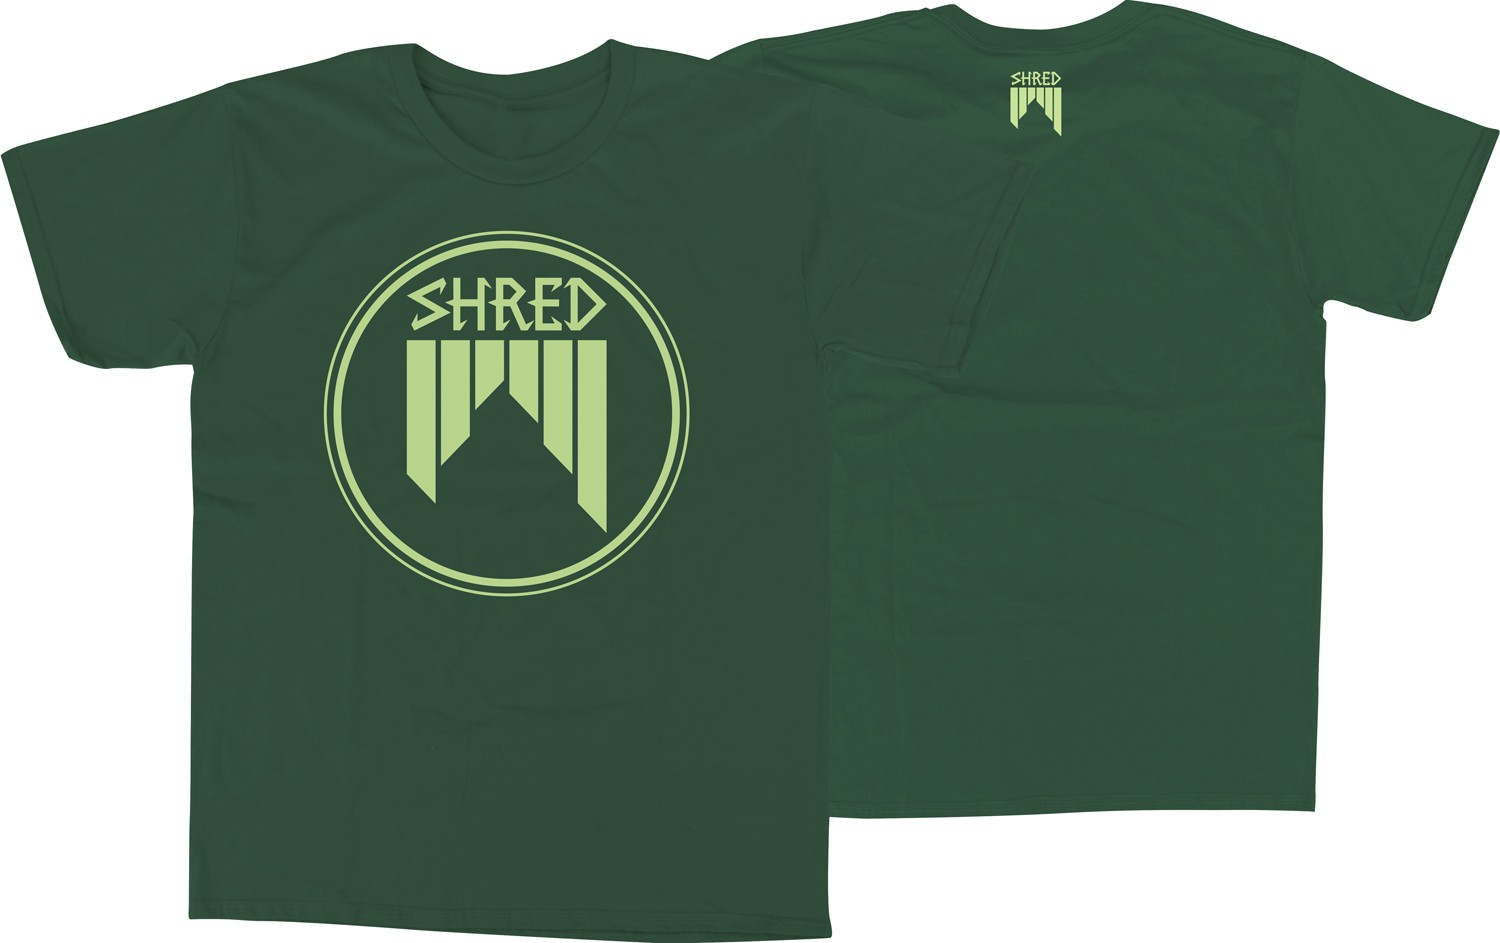 Shred CONCENTRIC t shirt